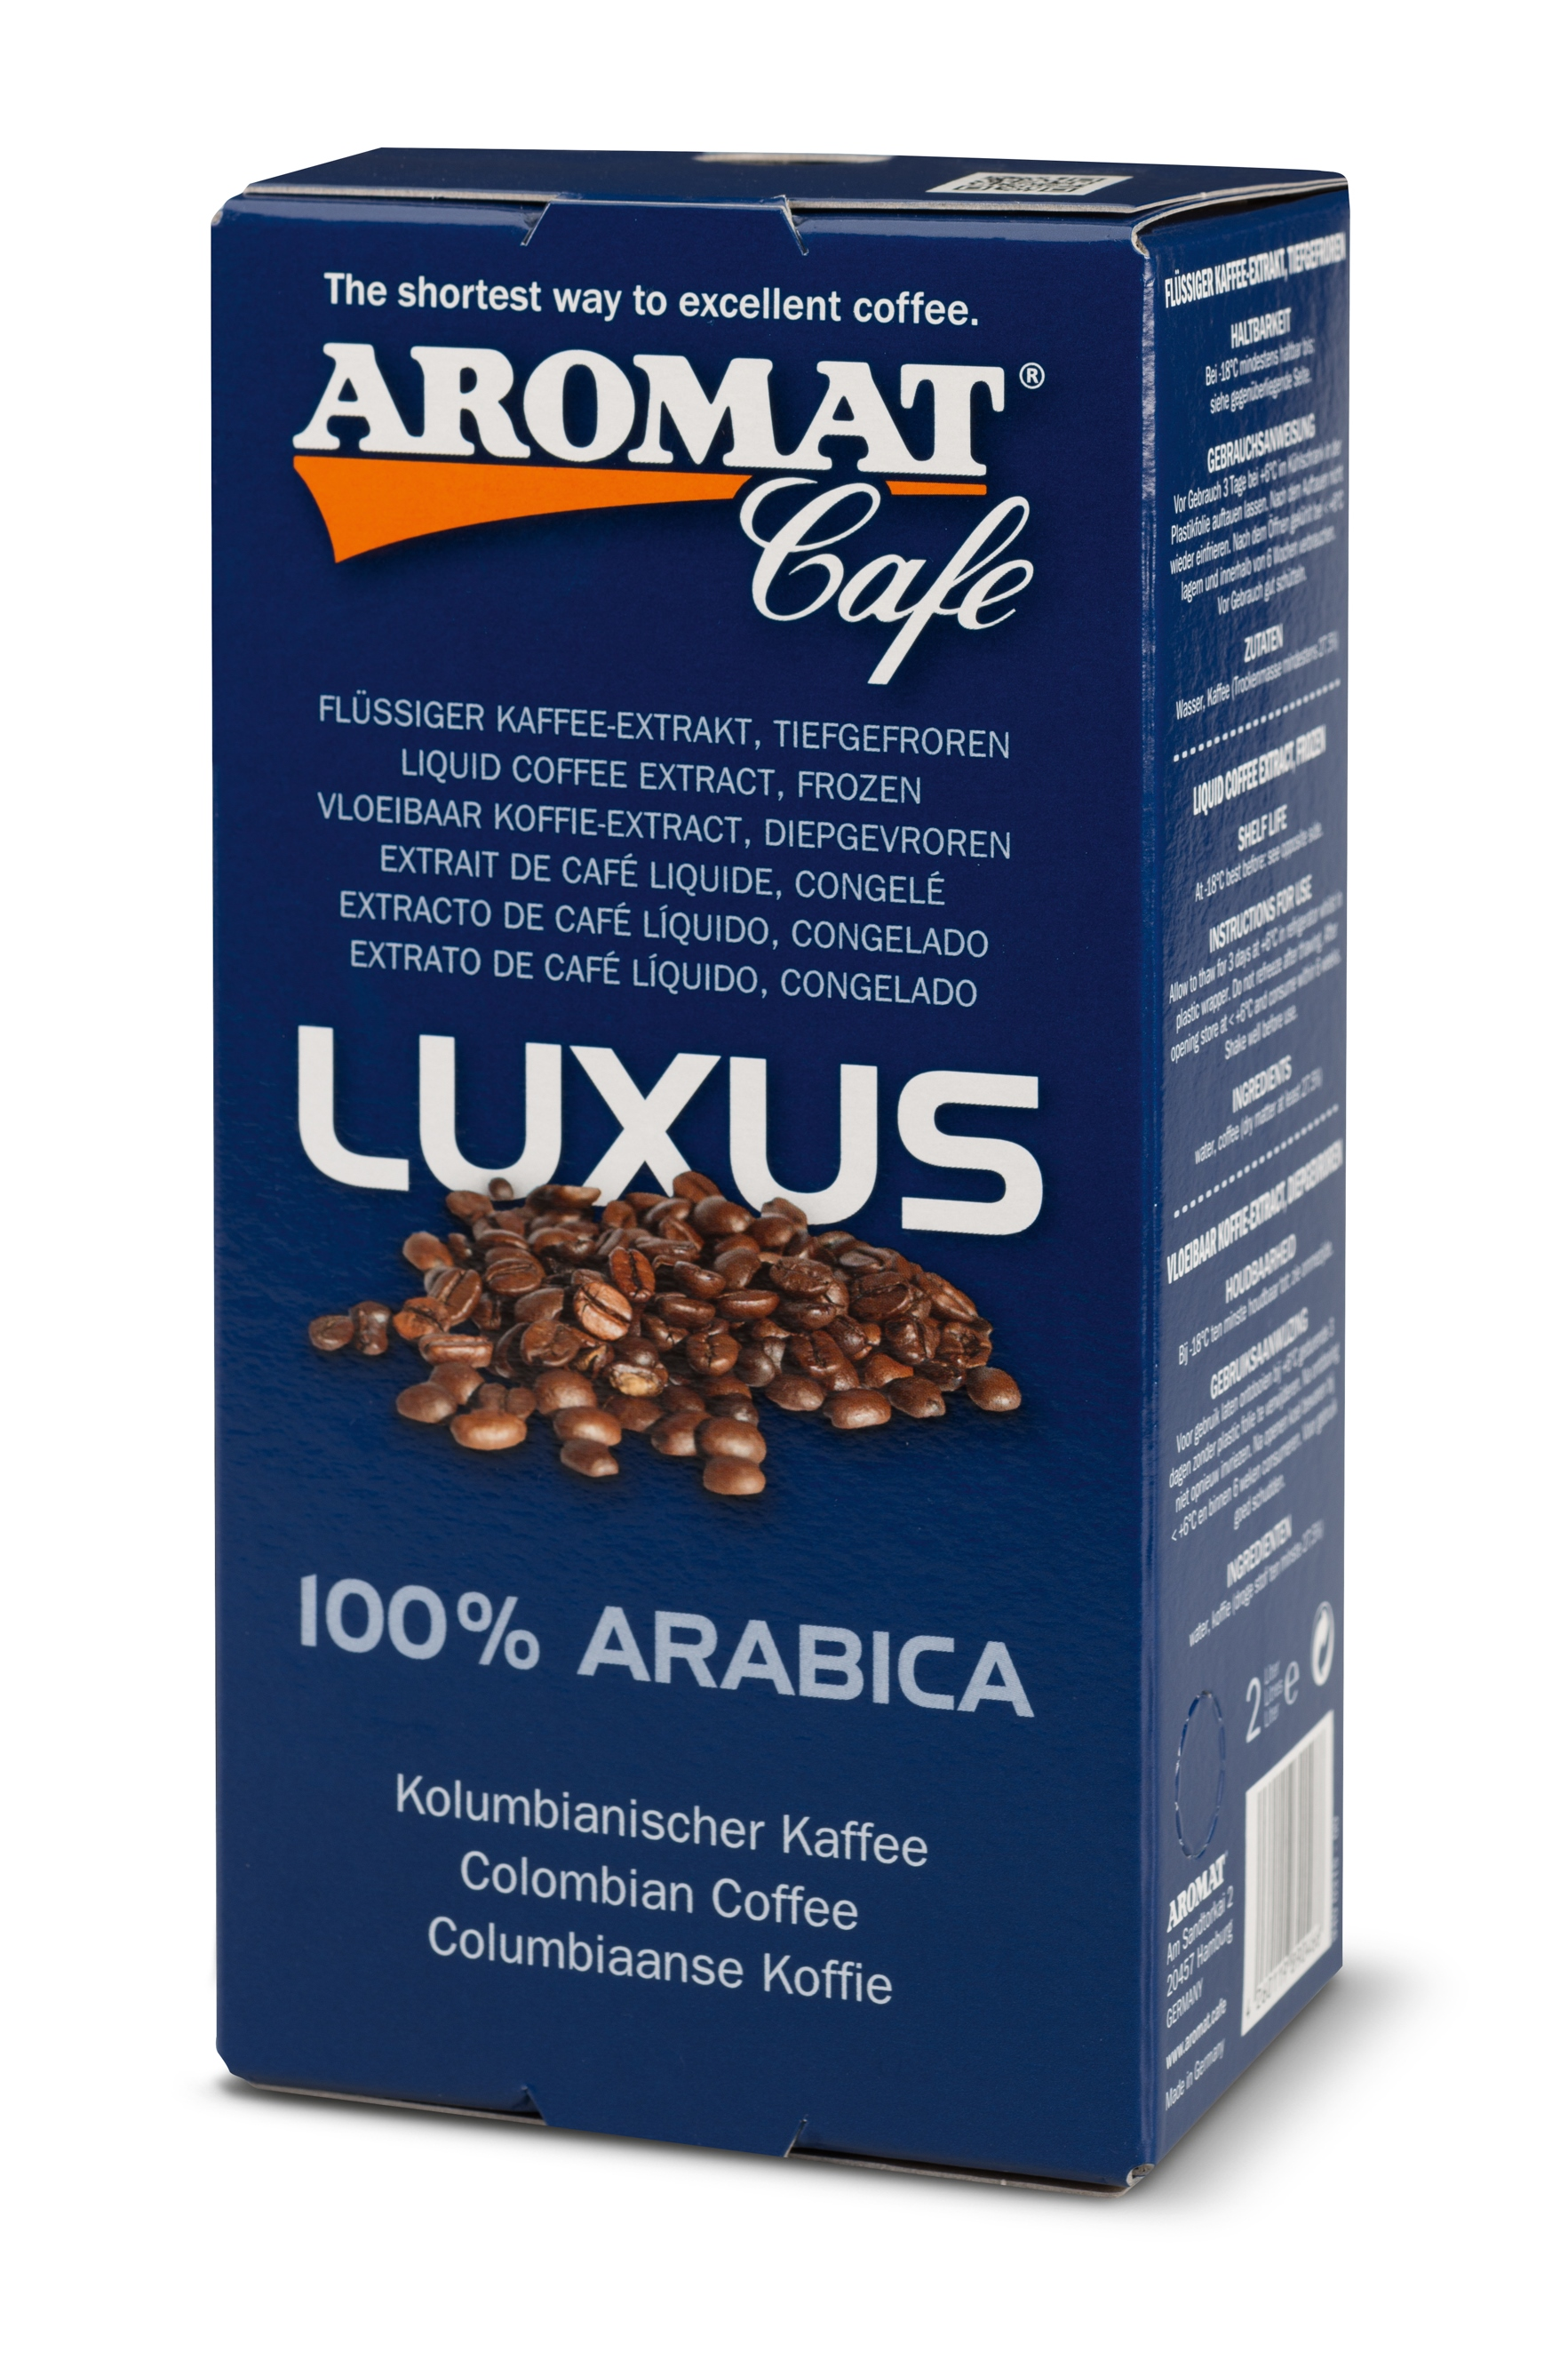 AROMAT Cafe LUXUS